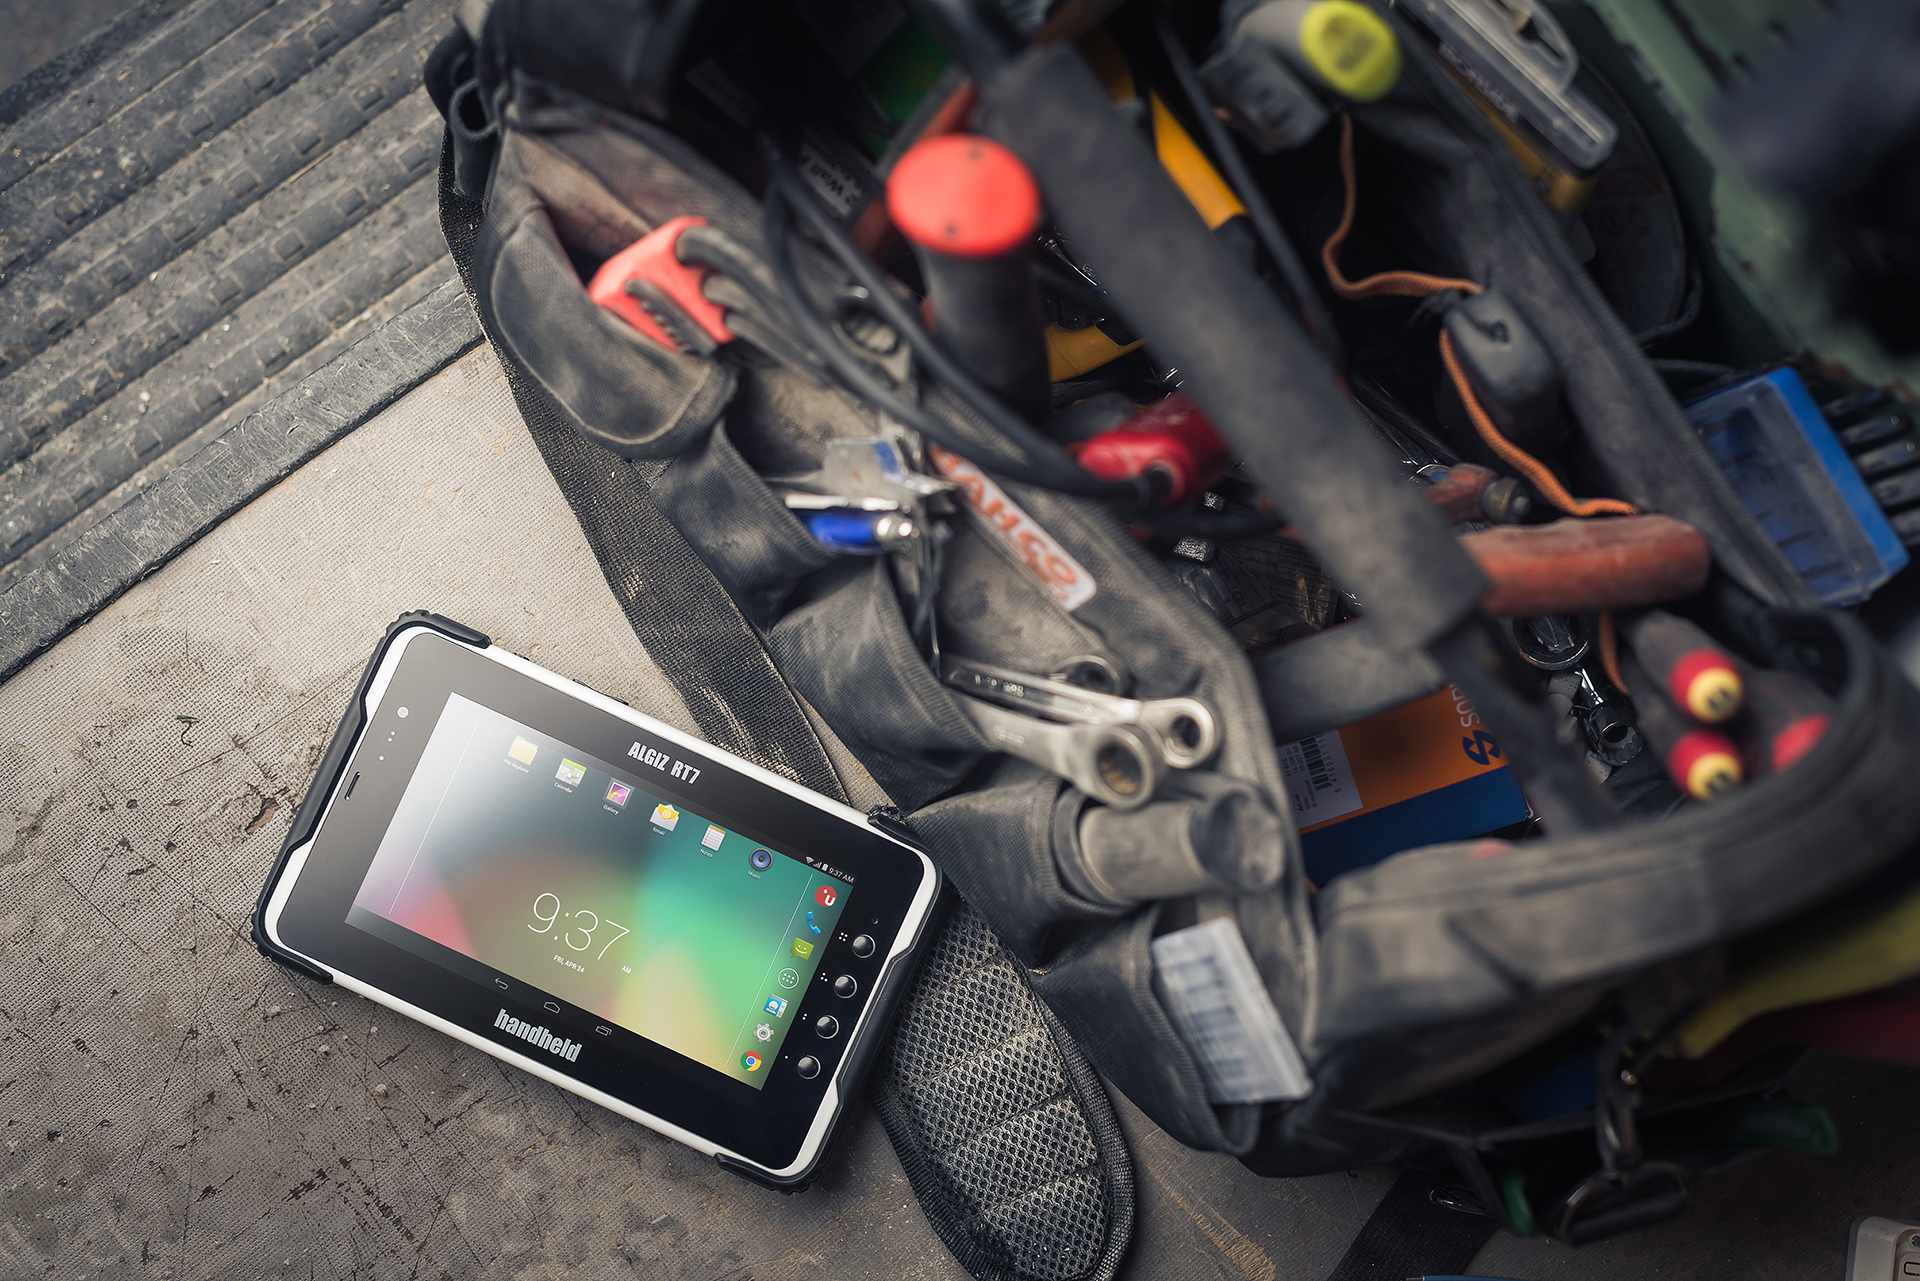 ALGIZ-RT7-rugged-Android-tablet-utilities-field service.jpg